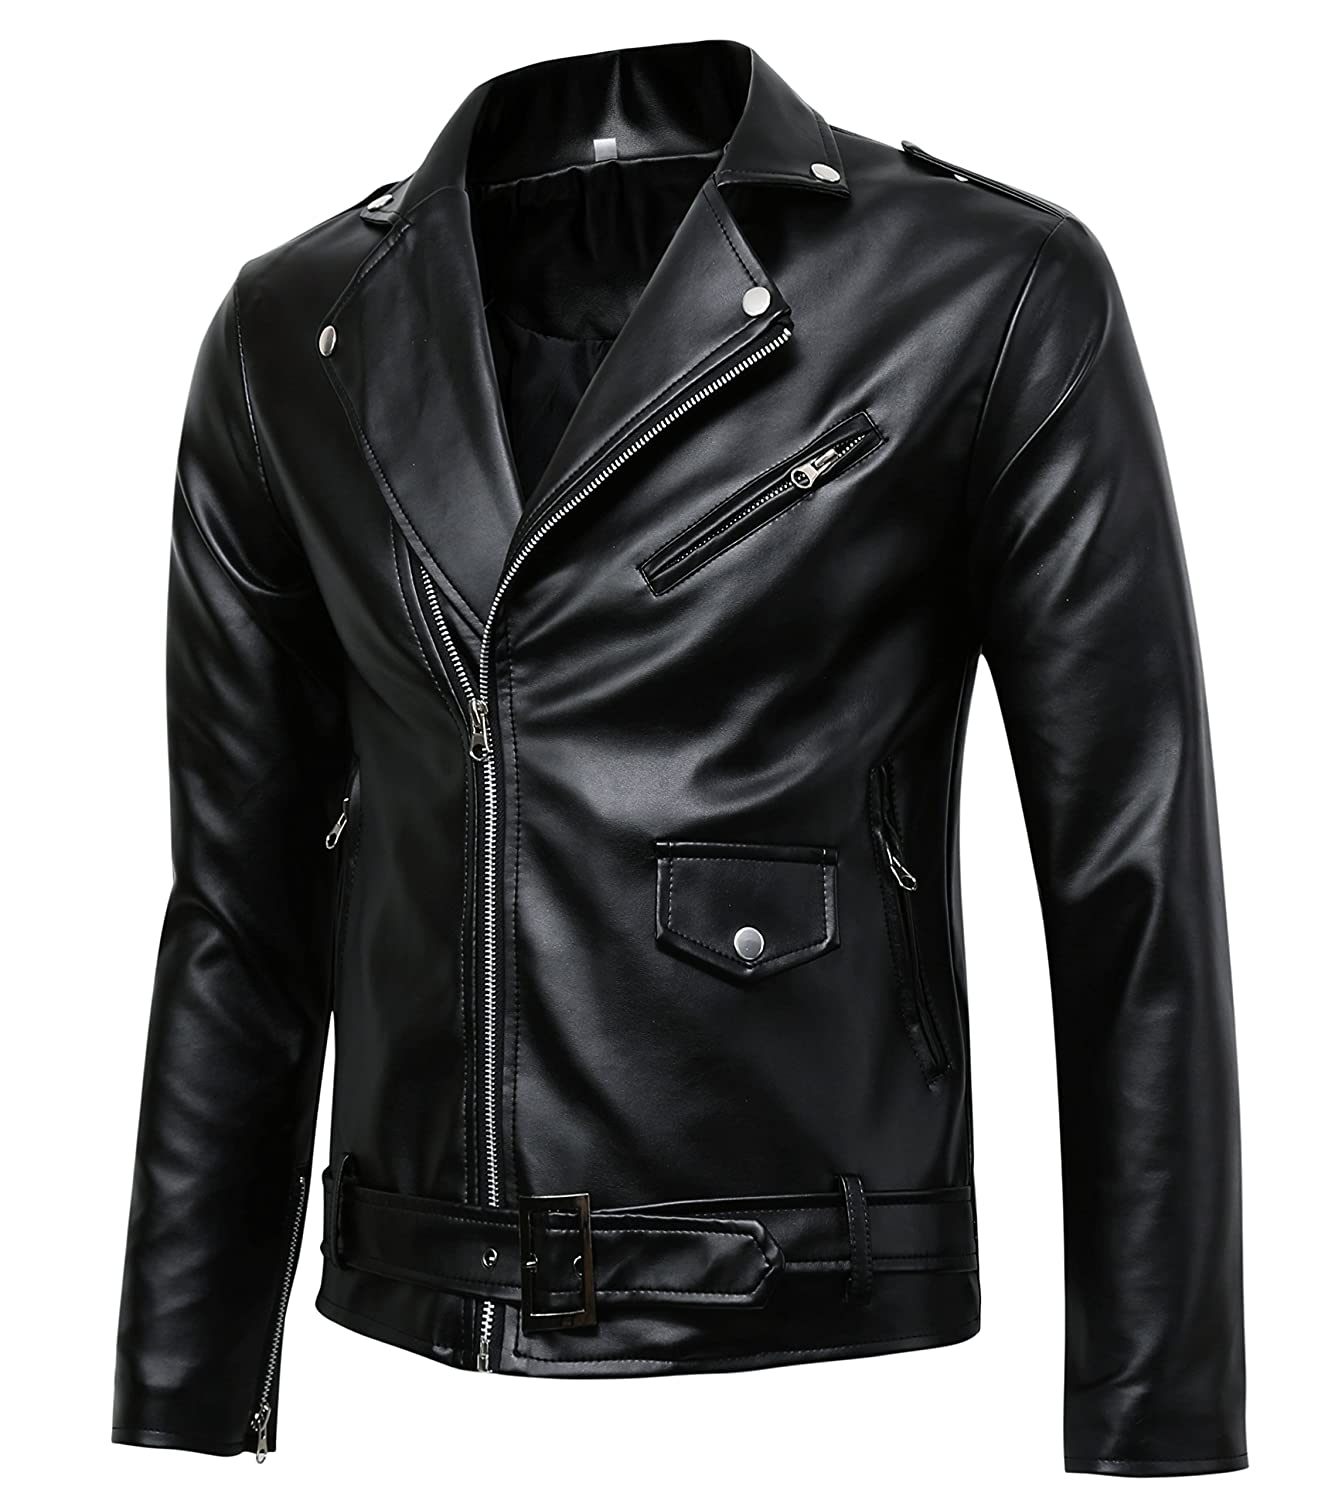 Men's Police Style Faux Leather Biker  Jacket